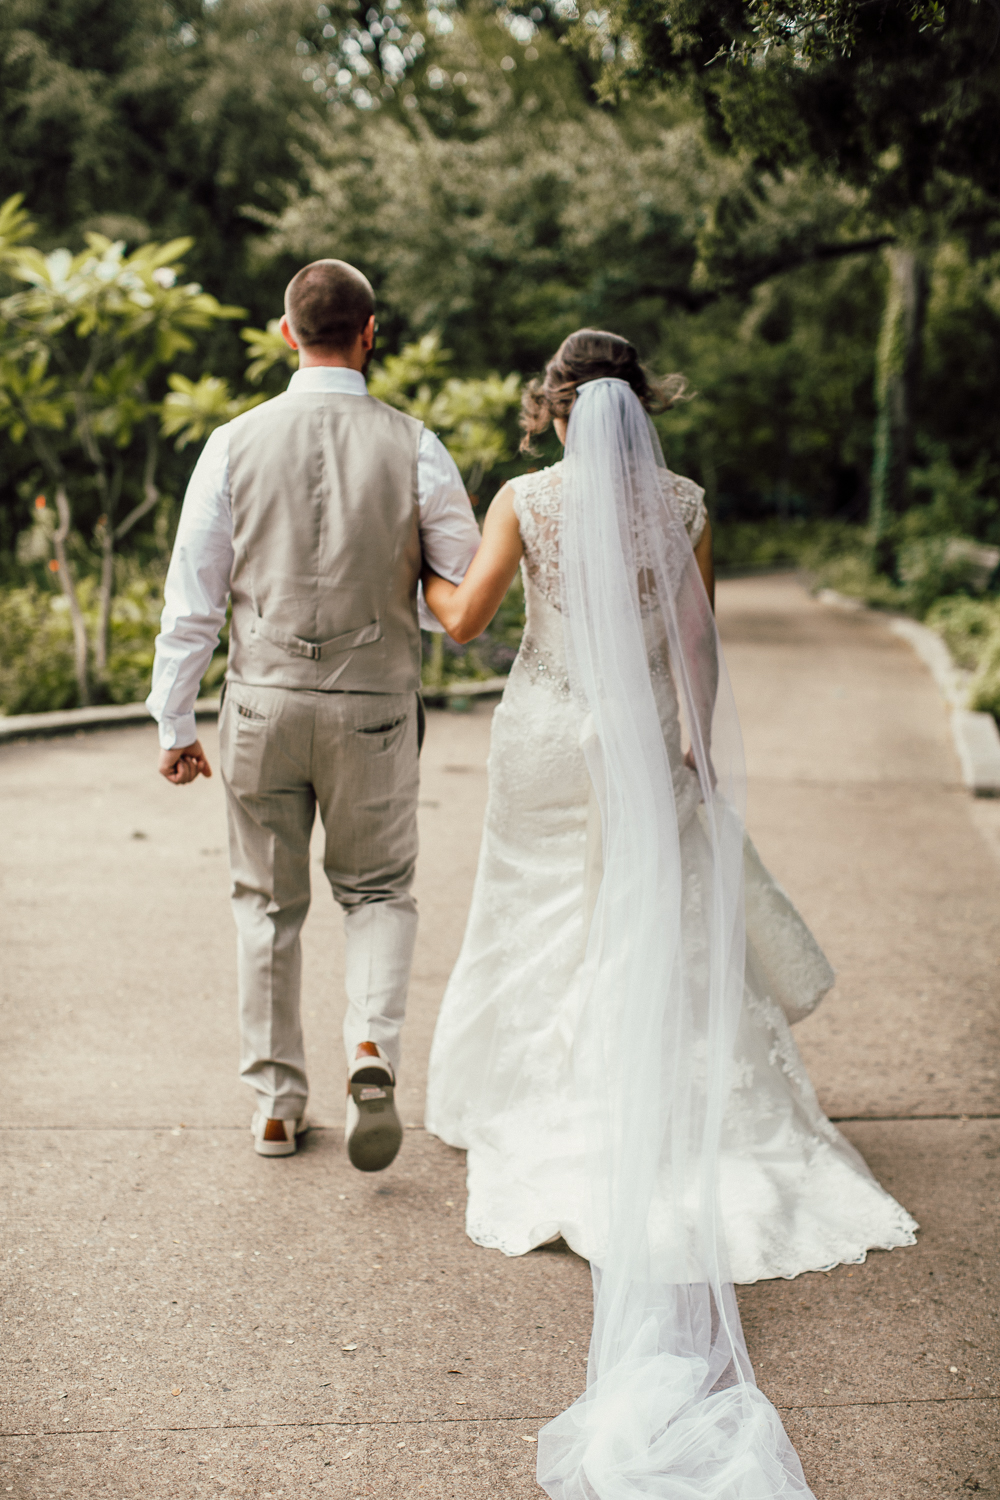 Wedding couple walking through Zilker Botanical Gardens after exchanging vows in Austin, Texas.